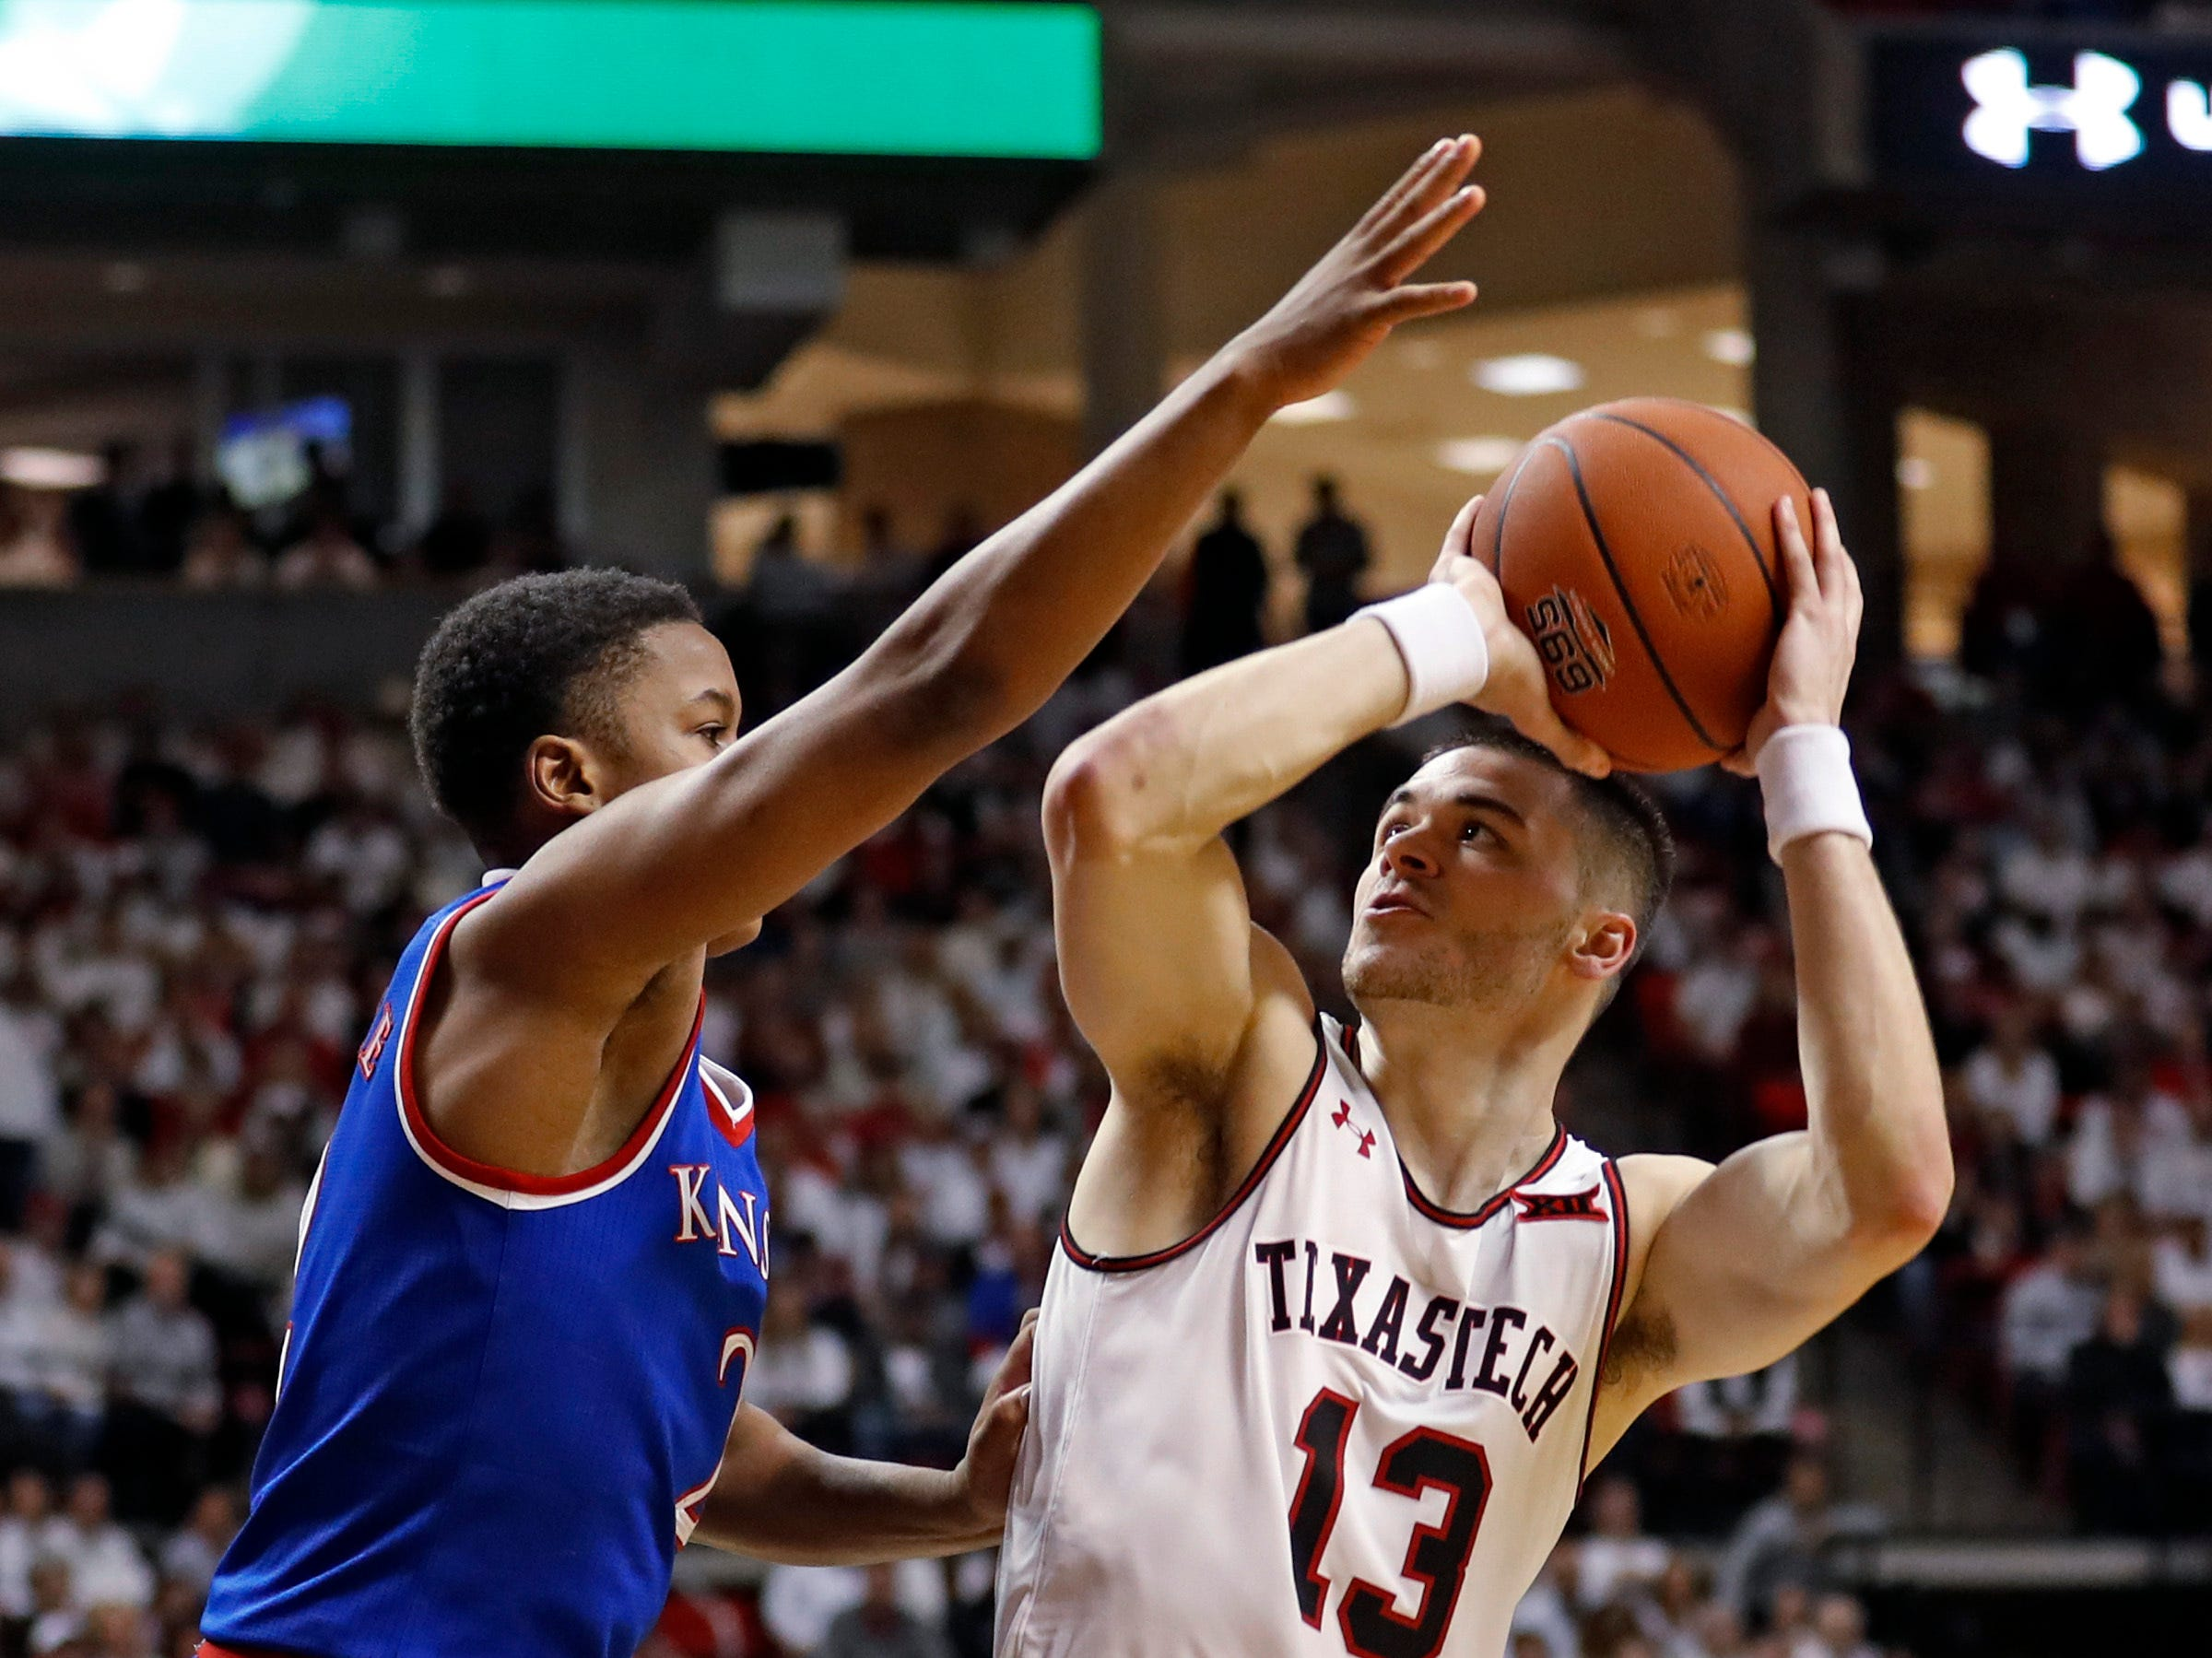 Texas Tech's Matt Mooney (13) looks for a shot over Kansas' Charlie Moore (2) during the first half of an NCAA college basketball game Saturday, Feb. 23, 2019, in Lubbock, Texas. (AP Photo/Brad Tollefson)